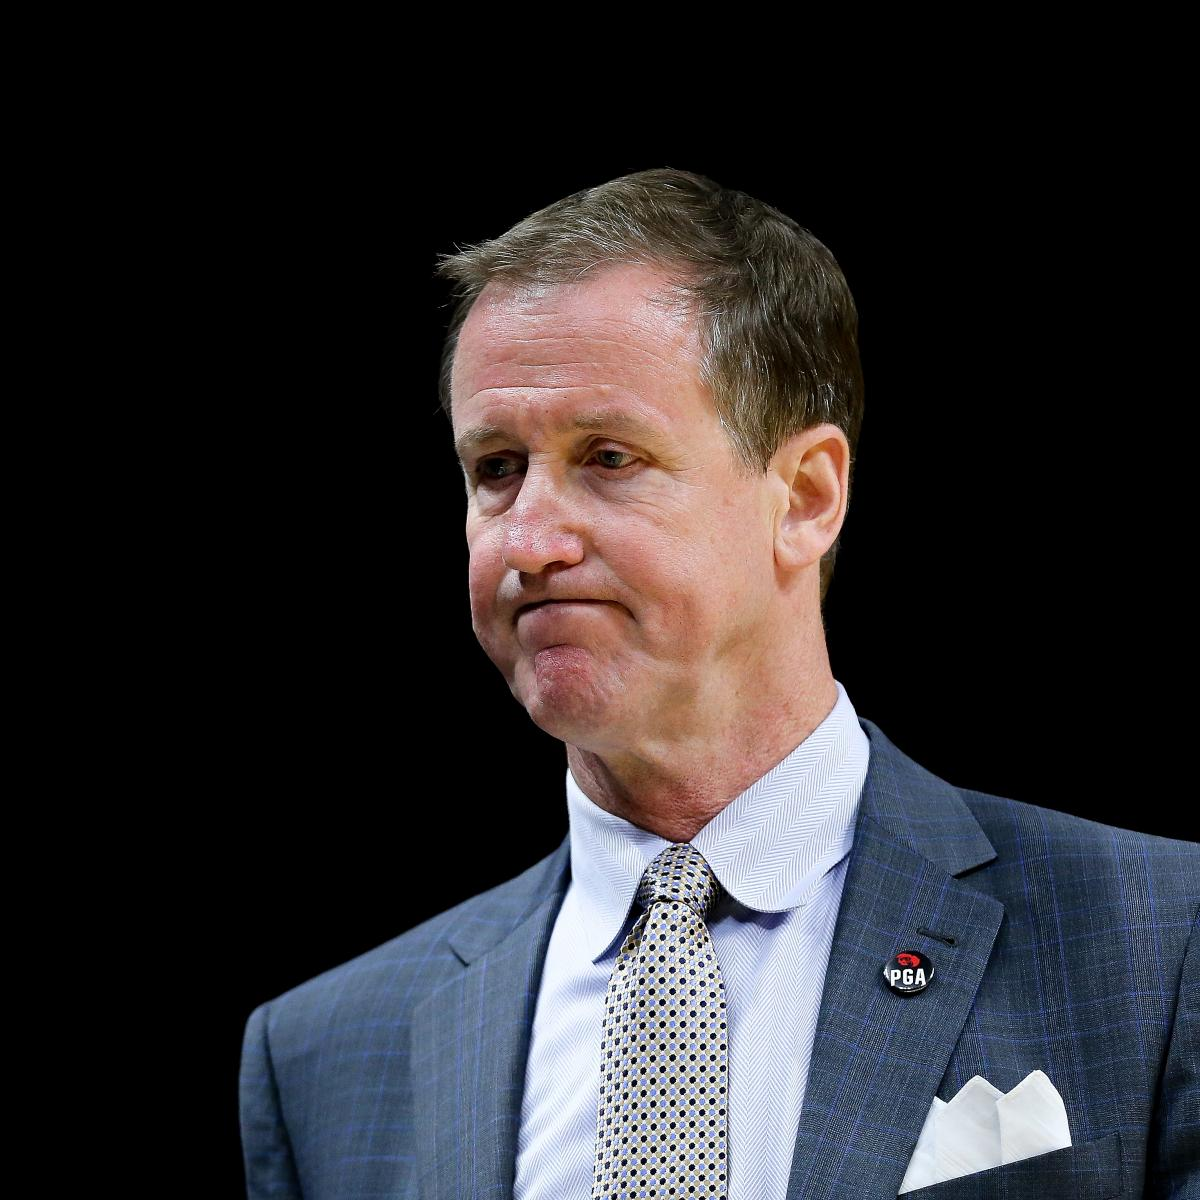 Blazers Head Coach: NBA Rumors: Blazers Almost Fired Terry Stotts After